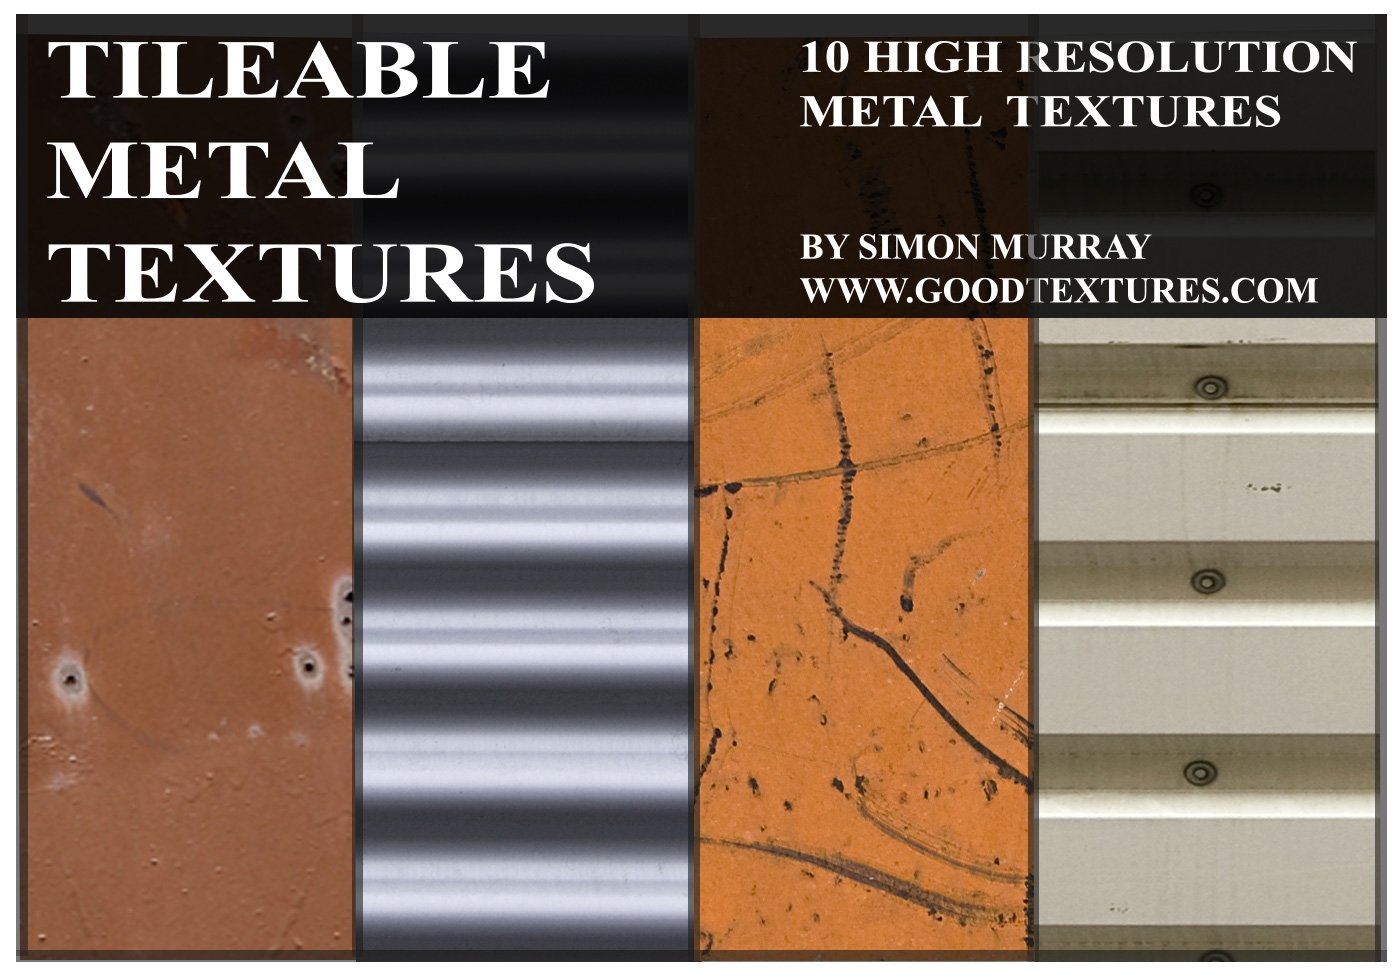 10 Tileable Metal Textures Free Photoshop Brushes At Brusheezy